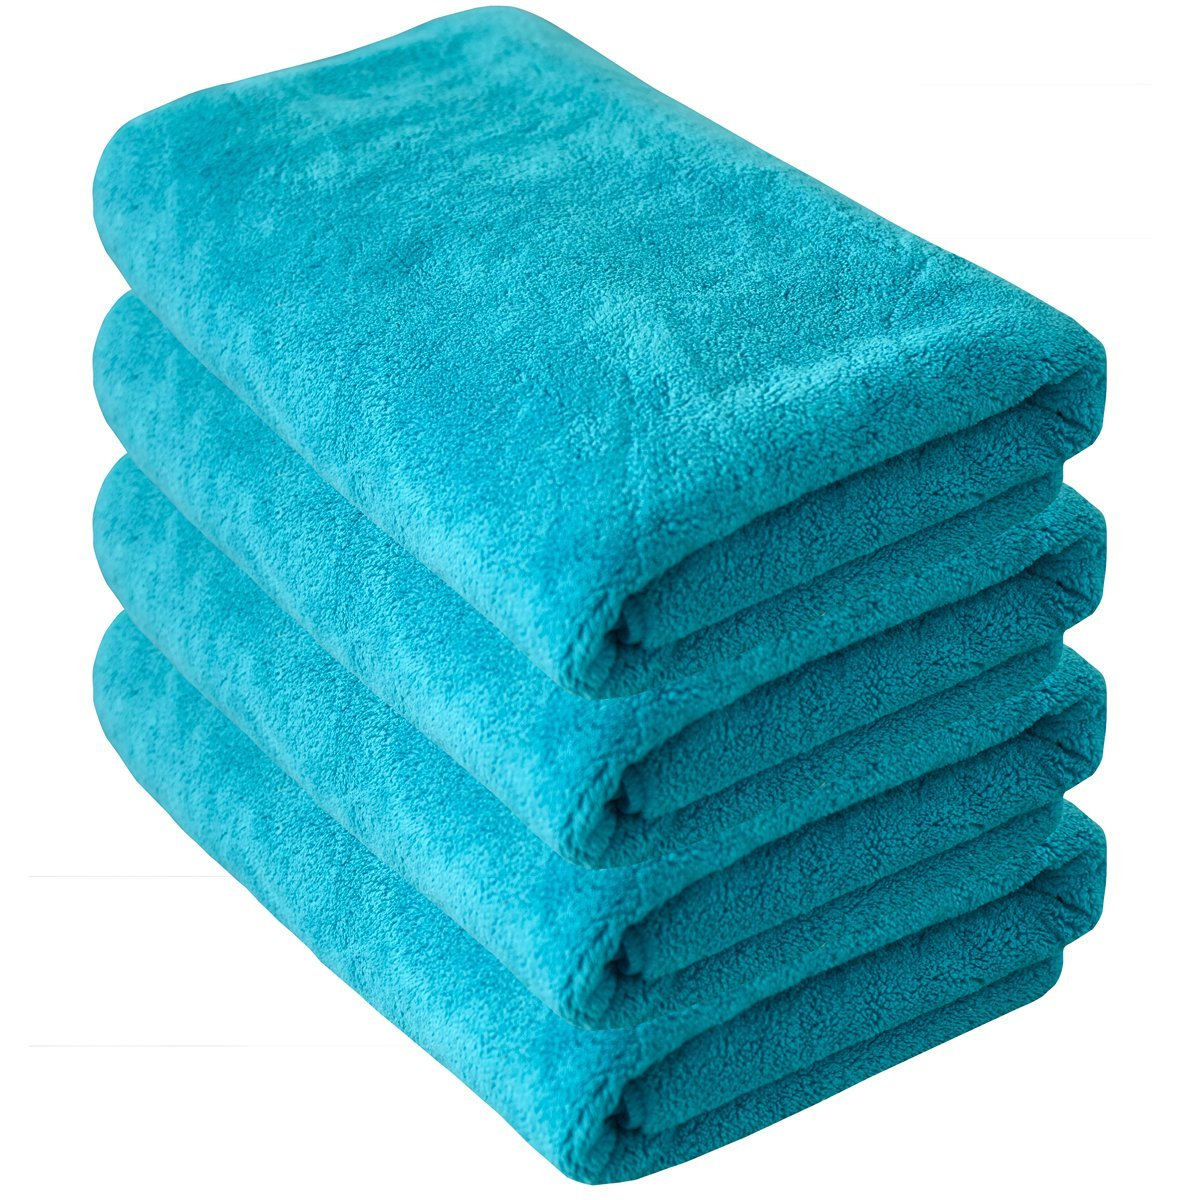 DEYI Premium Soft, Highly Absorbent Quick Dry Bath Hand Towel Set for Swimmers, Lightweight Hotel & Spa Towel Set (Bath Towels - Set of 4, Lake Blue)